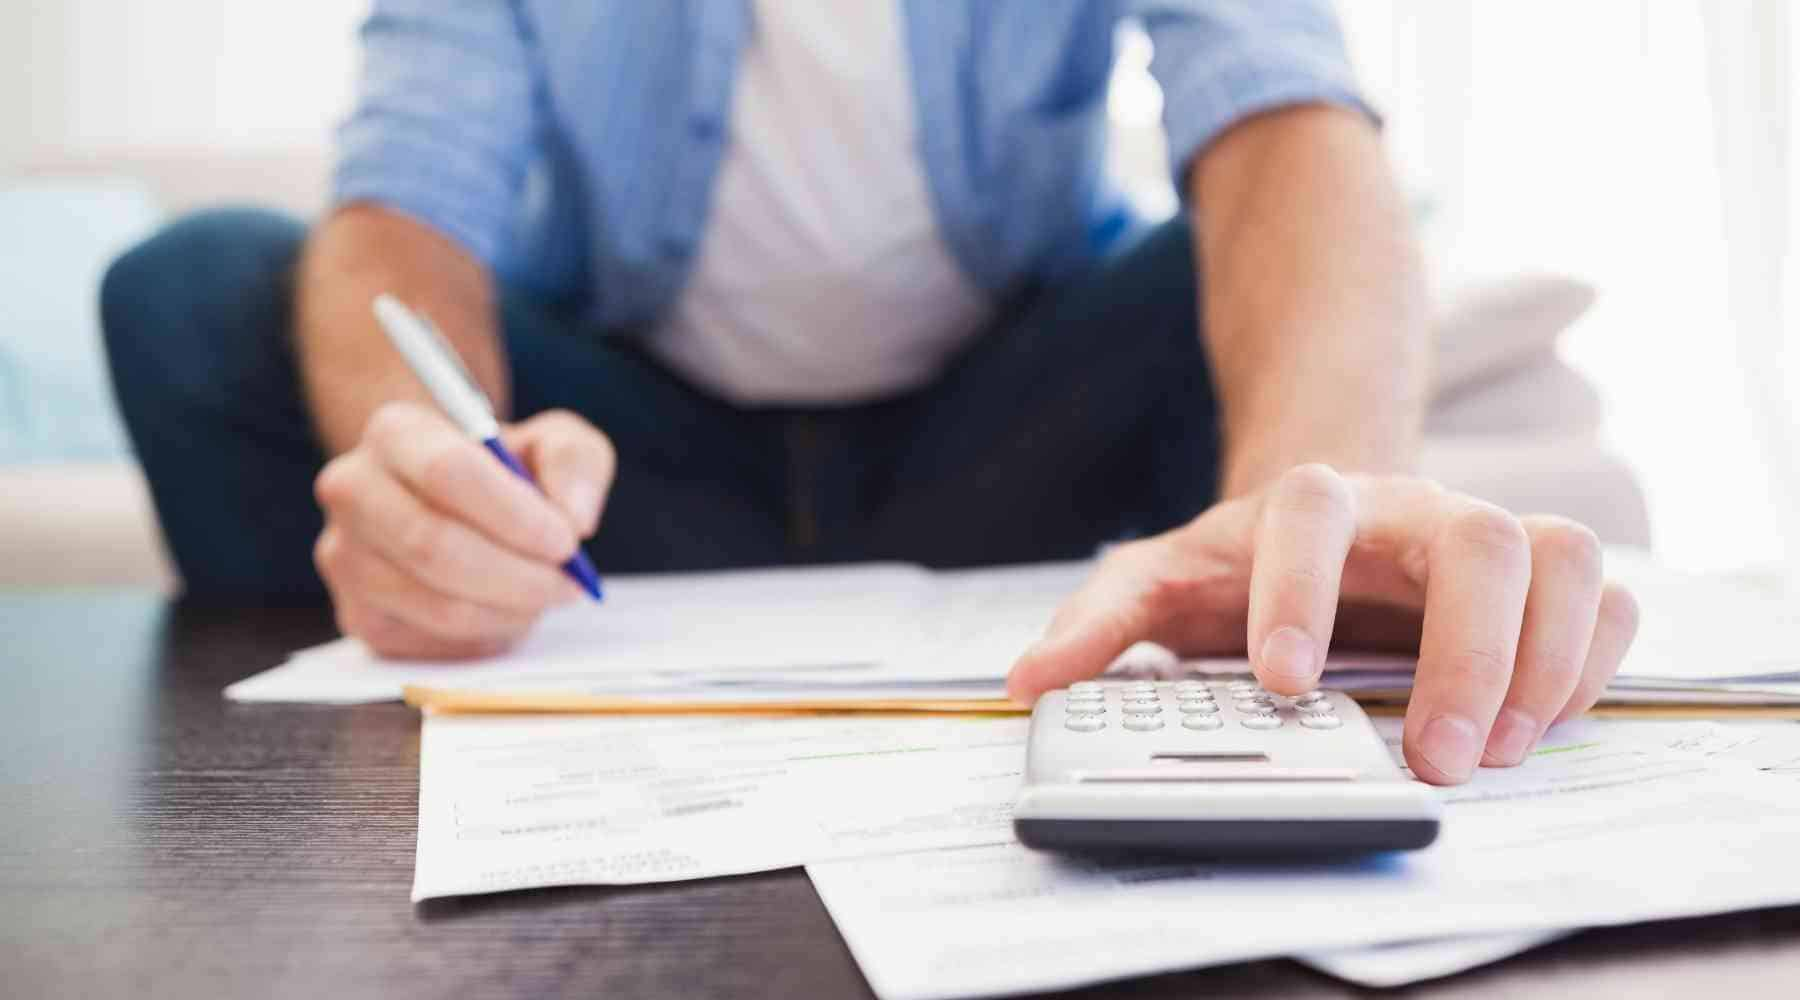 Become Fiscally Responsible - Reduce Debt